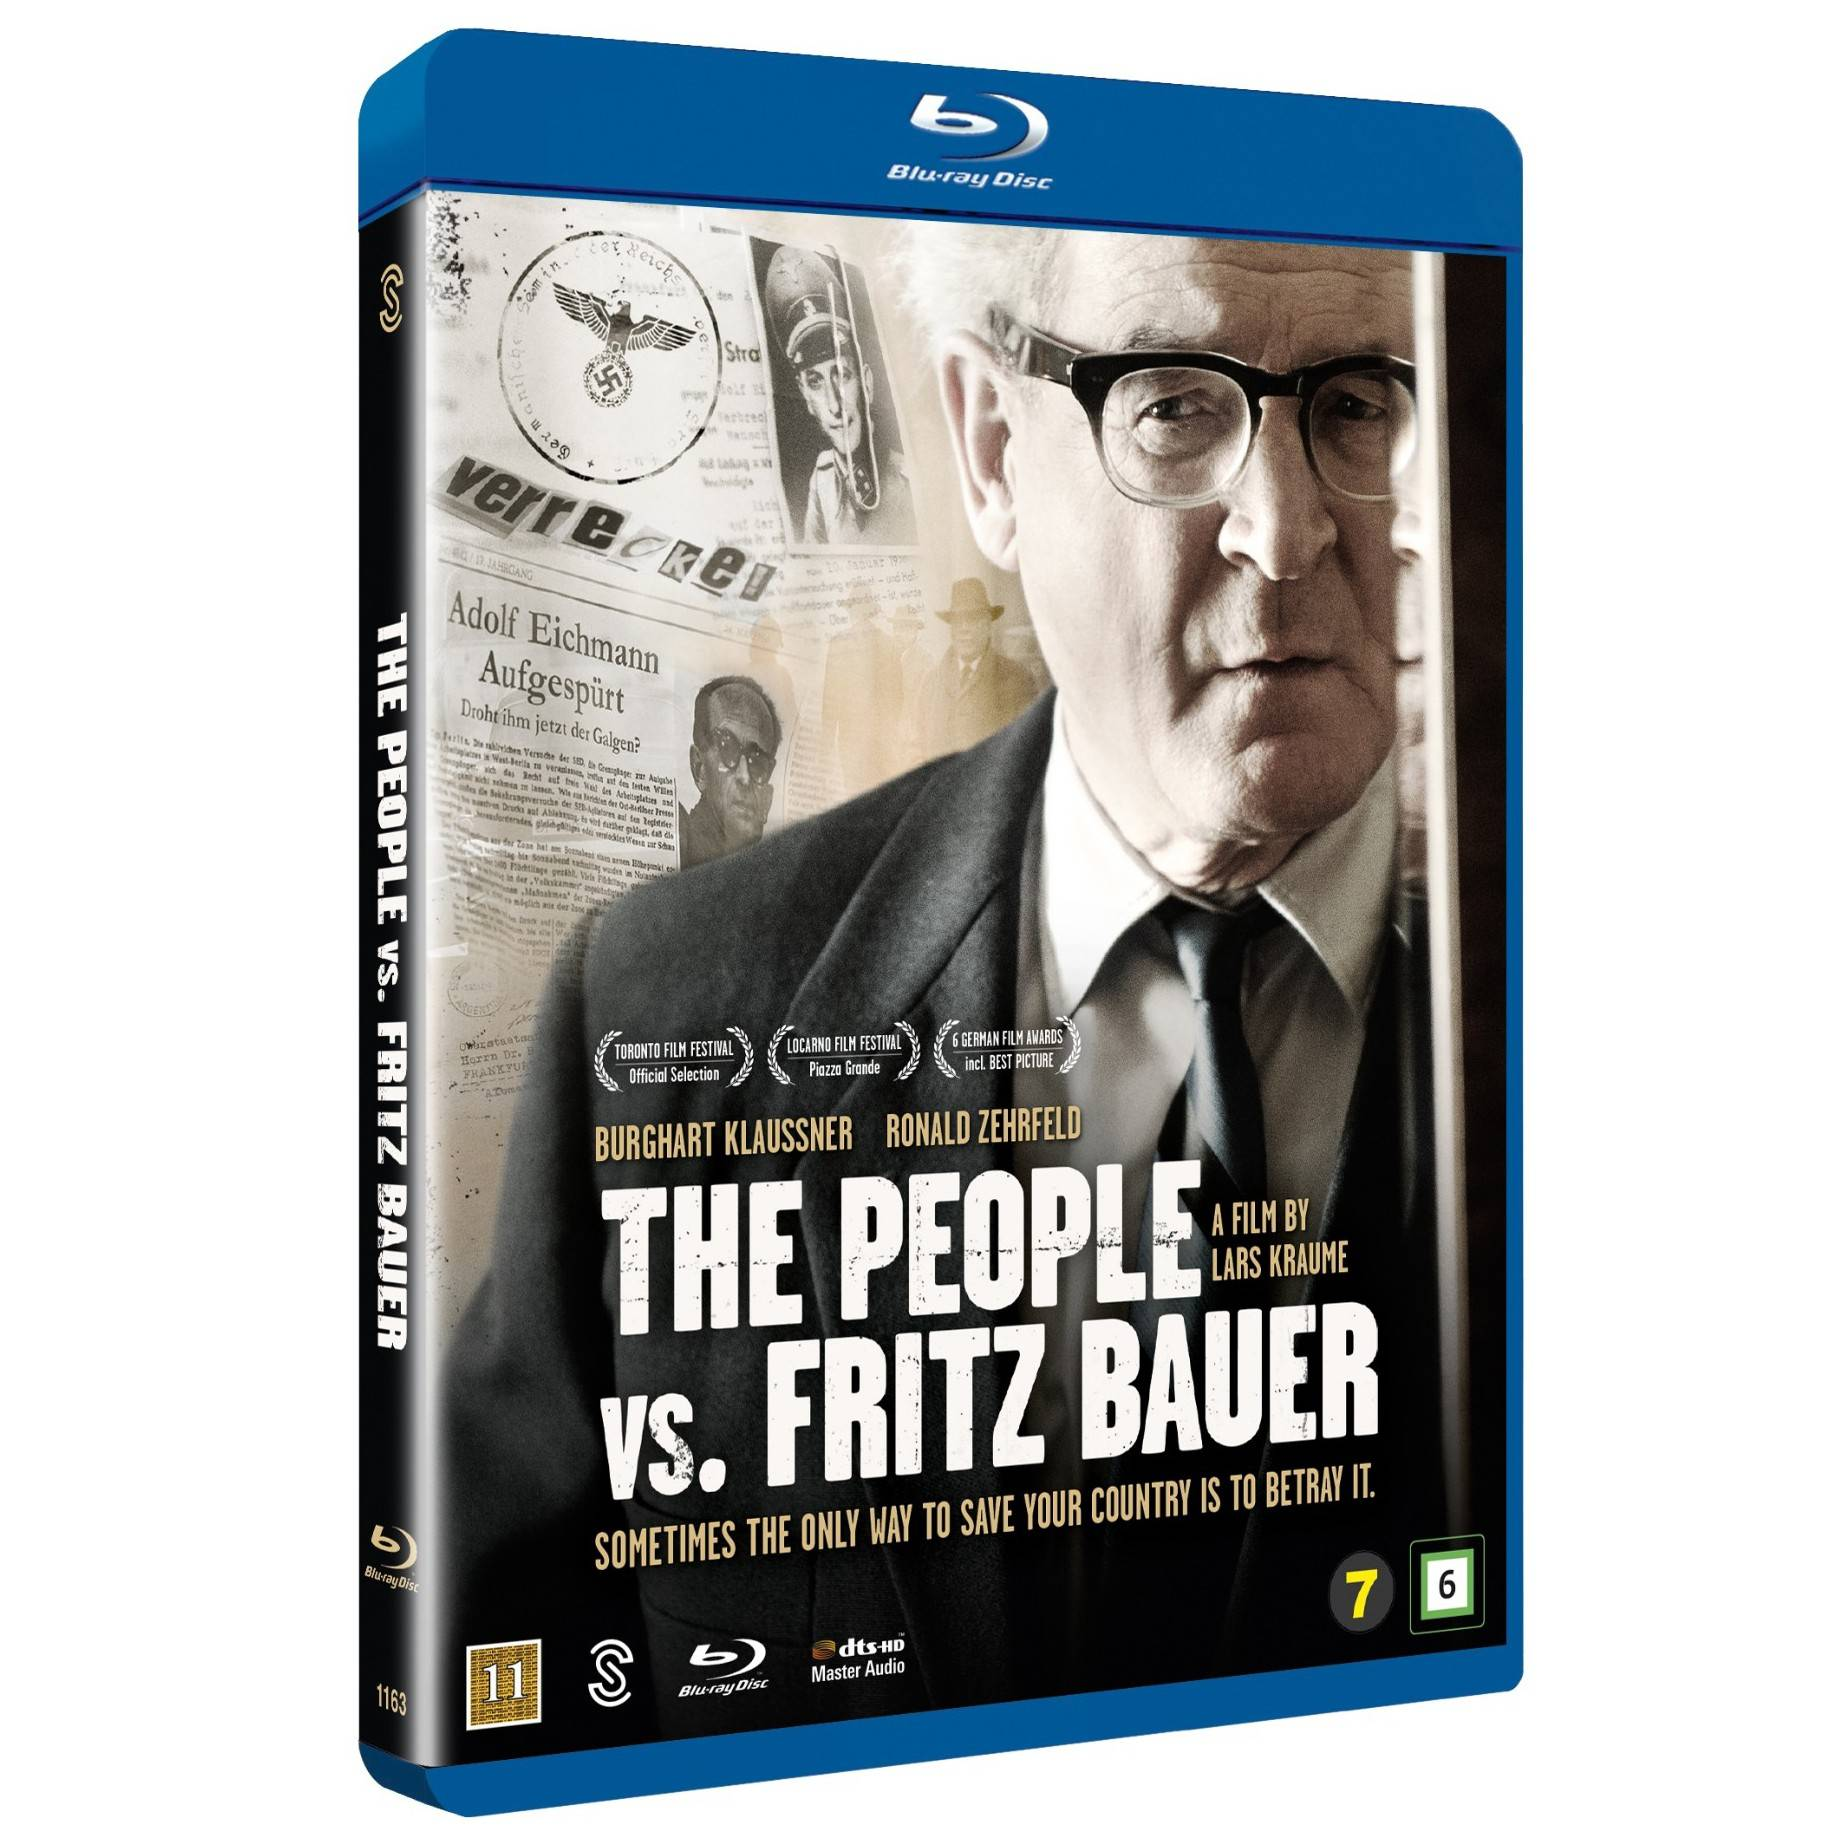 Scanbox The People vs. Fritz Bauer (Blu-ray)